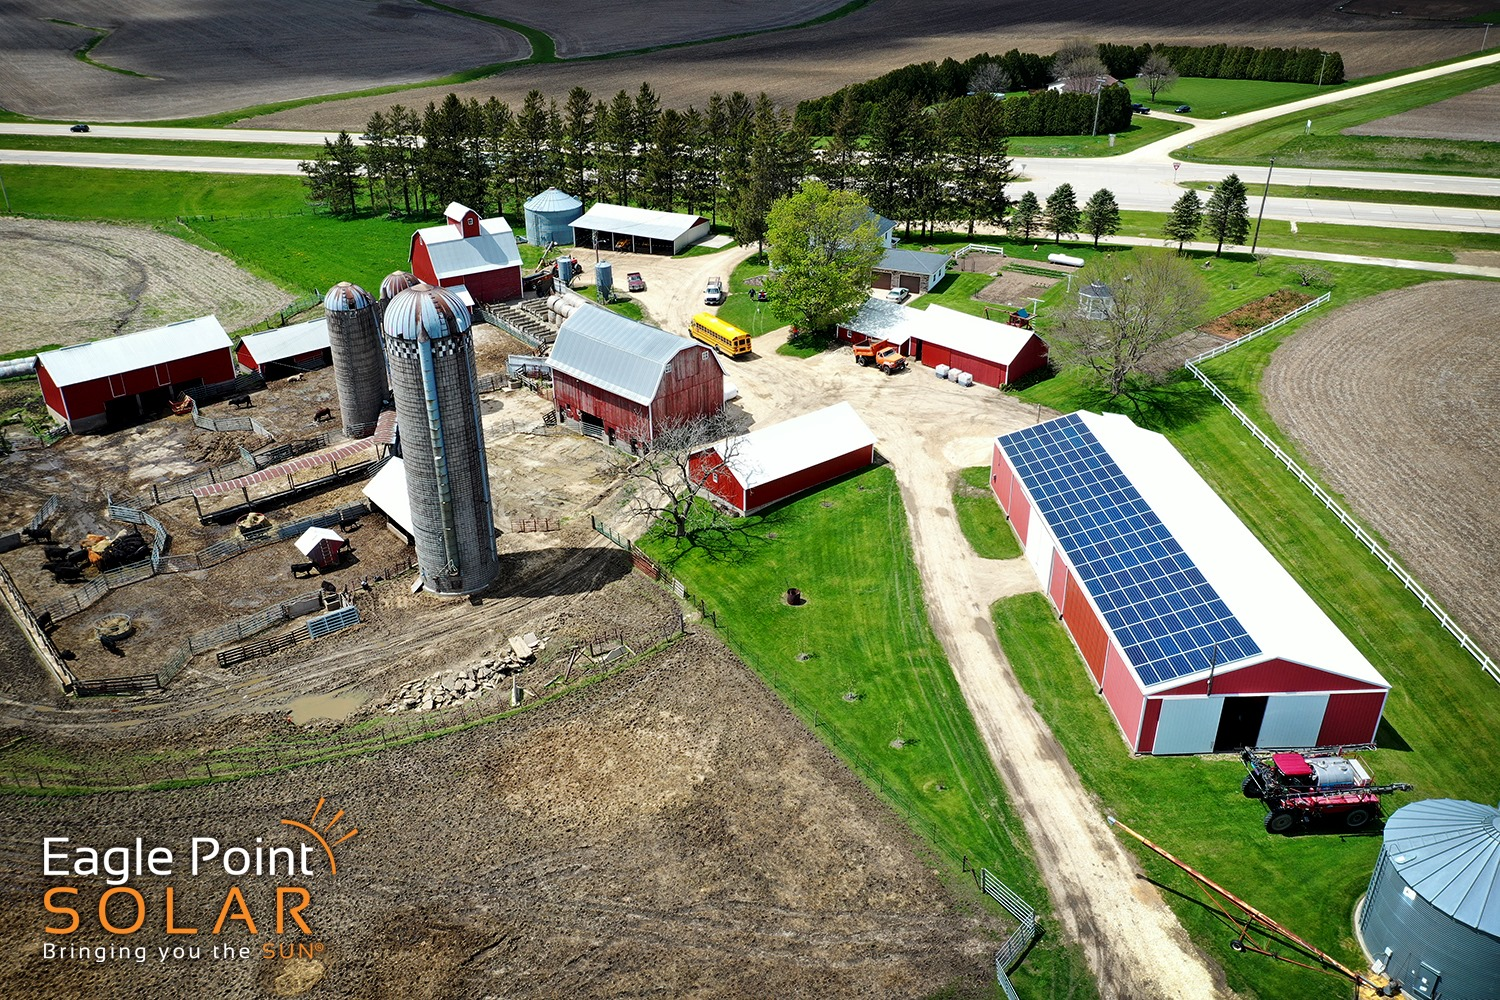 Photo of agricultural roof mounted solar array